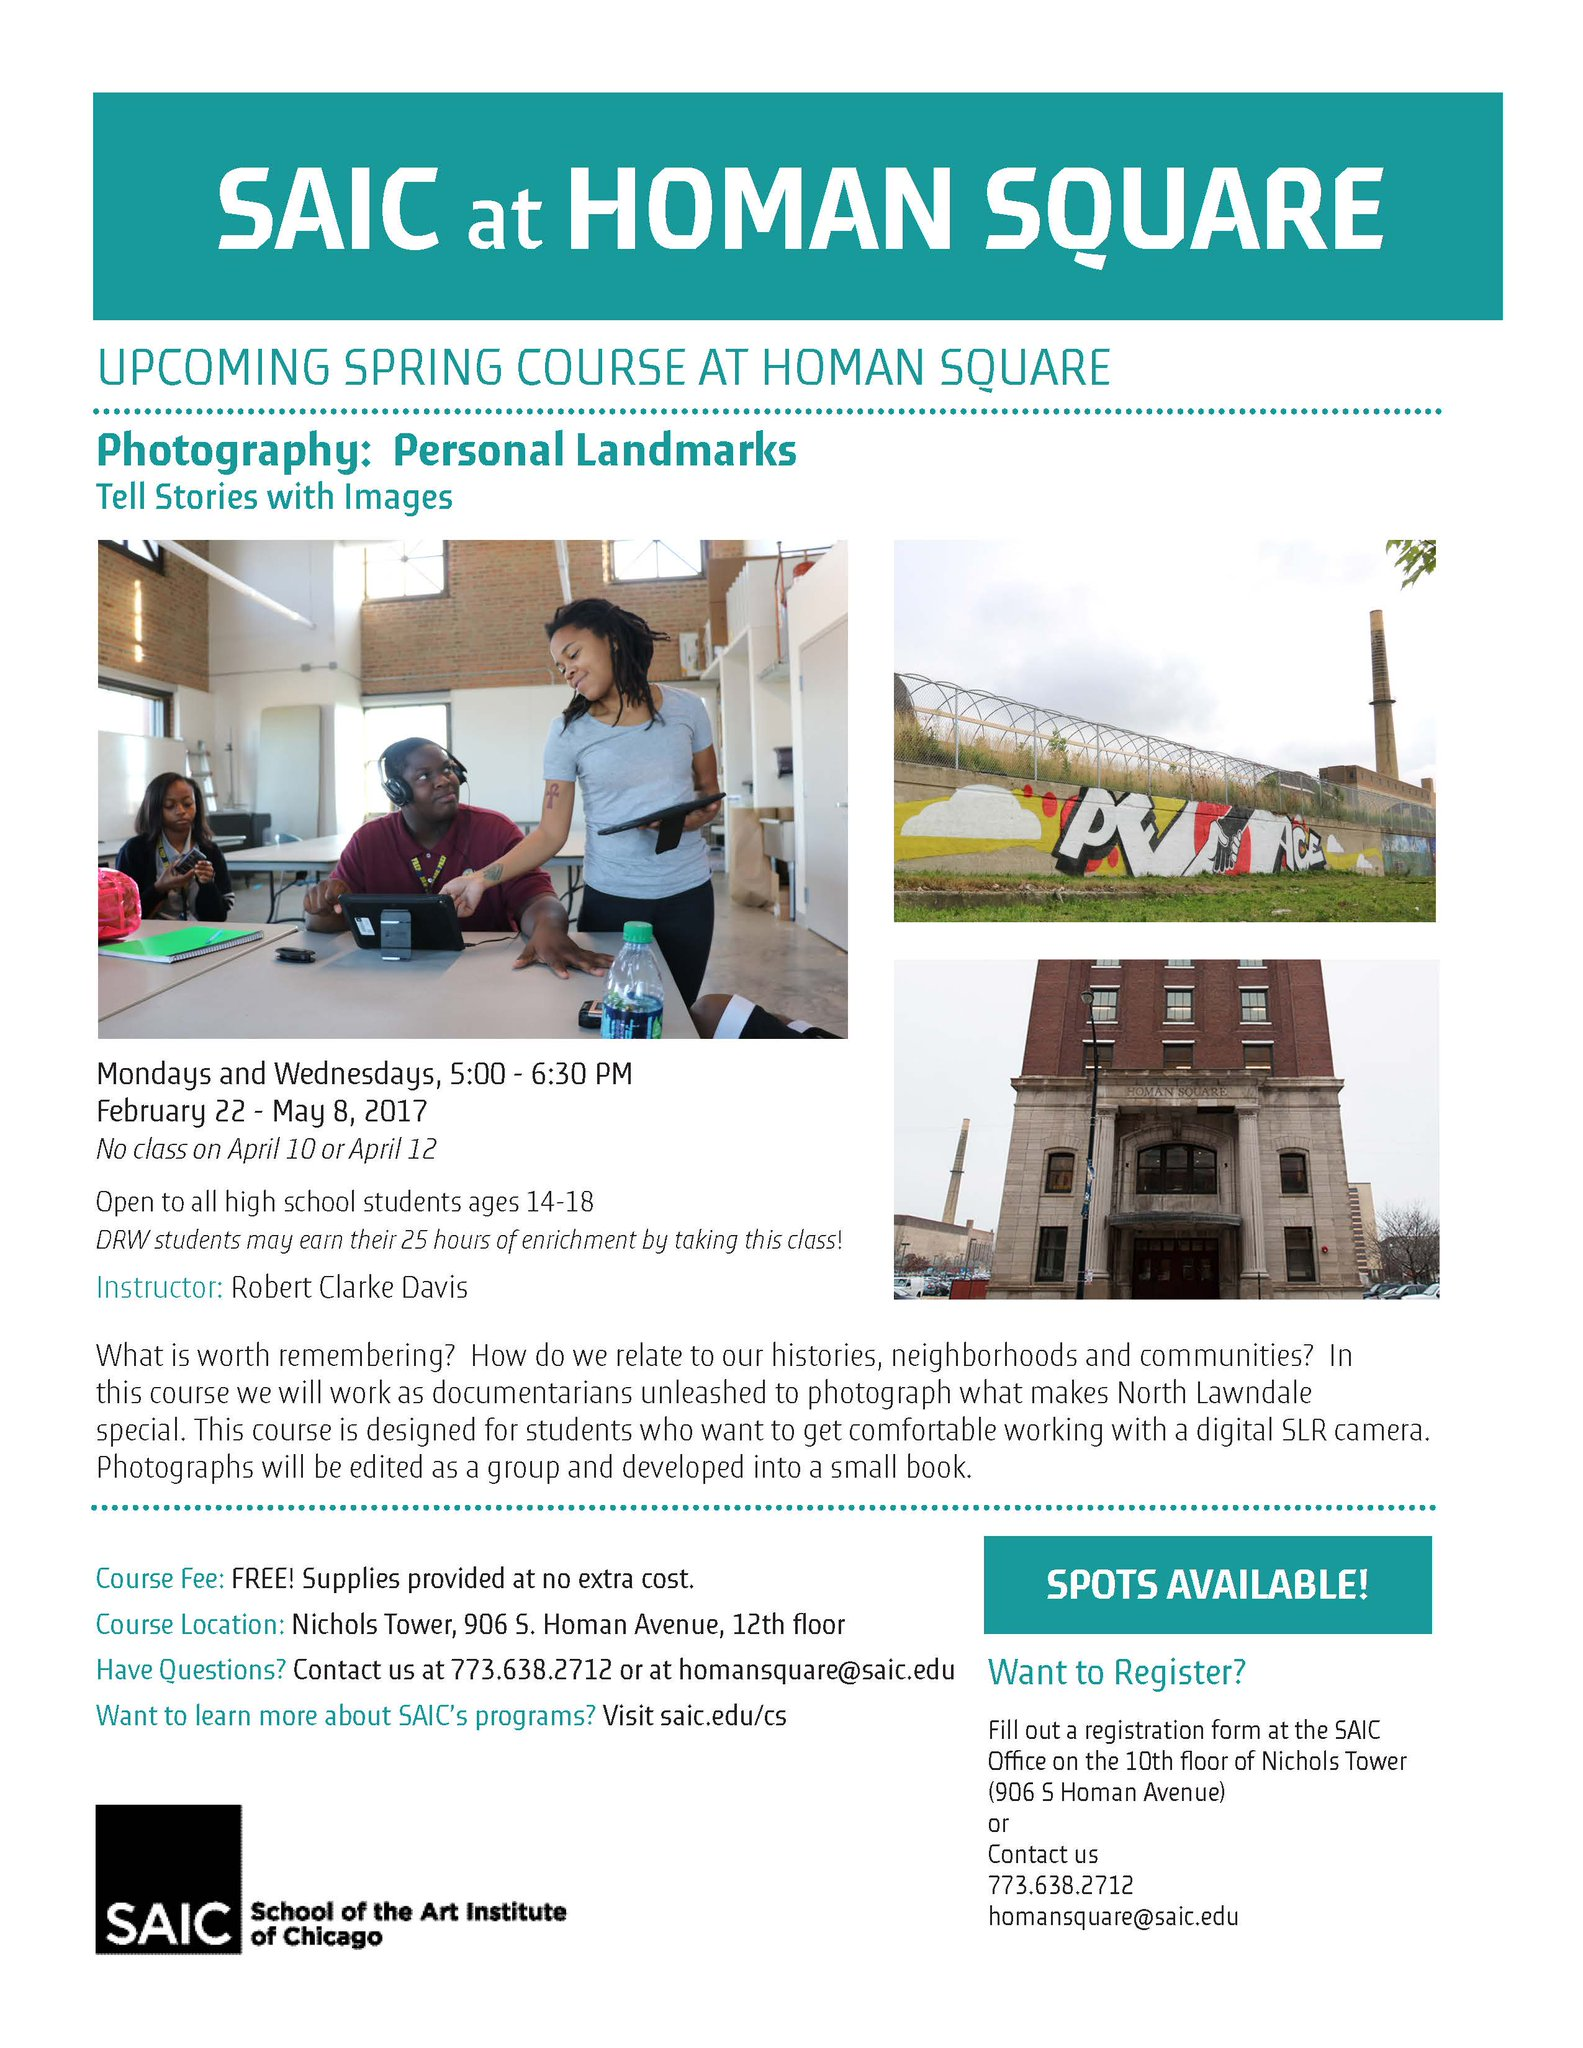 Saic At Homan Square On Twitter Dslr Digital Photography Course Available To High School Students At Our Nichols Tower Classroom Begins Feb 22 Reserve Your Spot Now Https T Co B8rmmliwtr